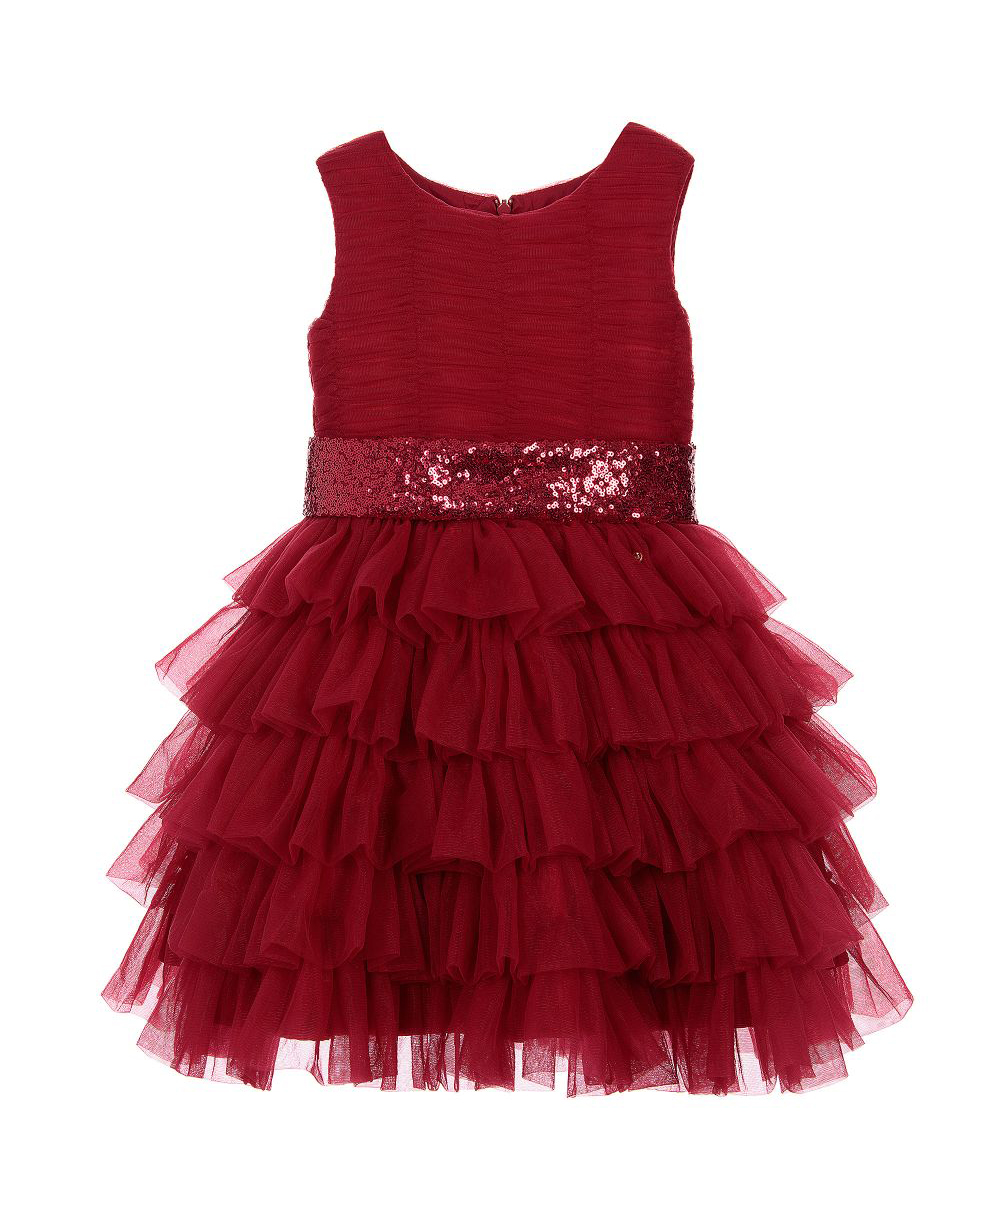 Burgandy Dress Satin Wedding Dress Tulle Skirt